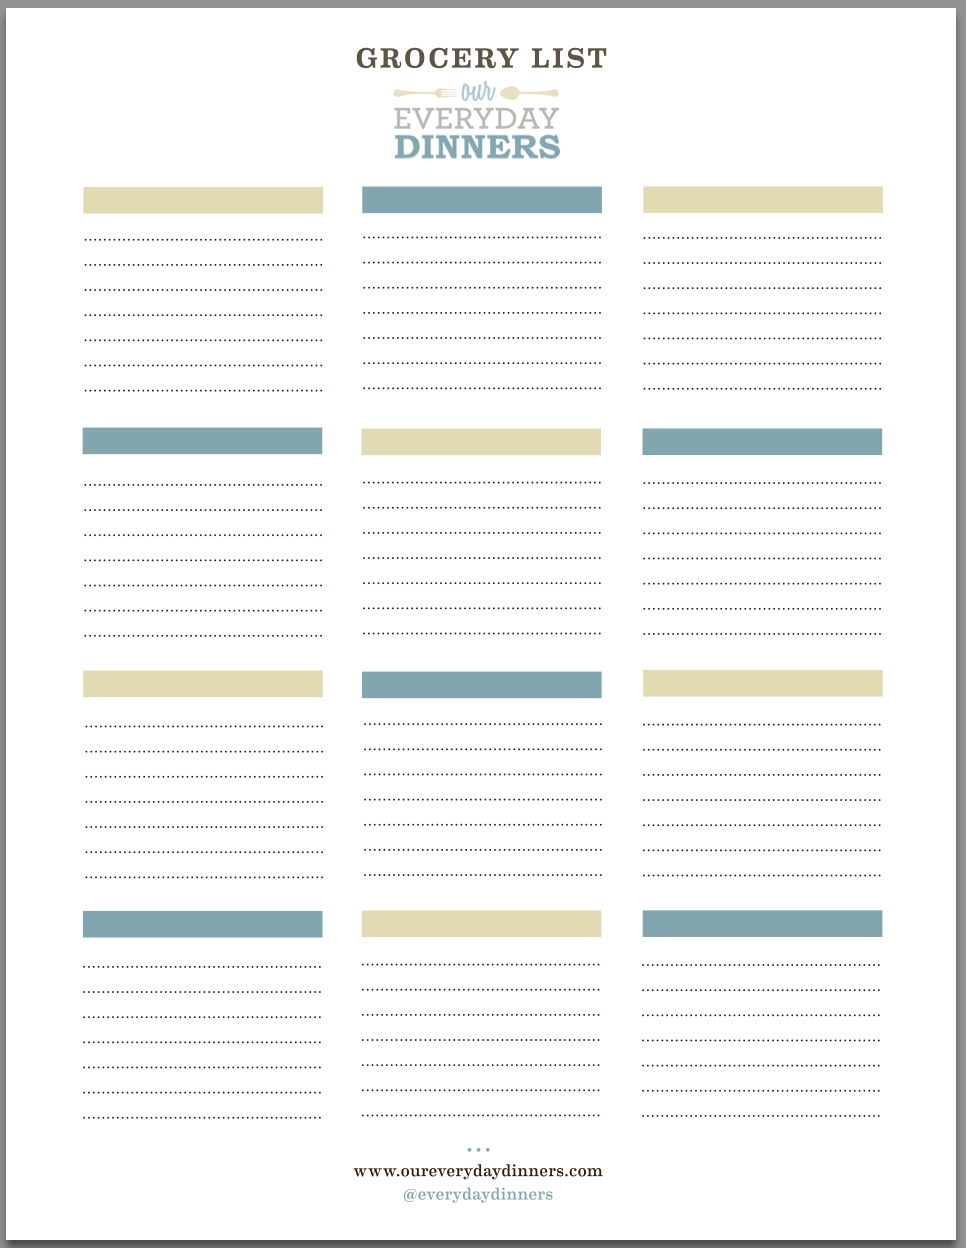 Grocery List Printable| Our Everyday Dinners  Blank Grocery List Templates